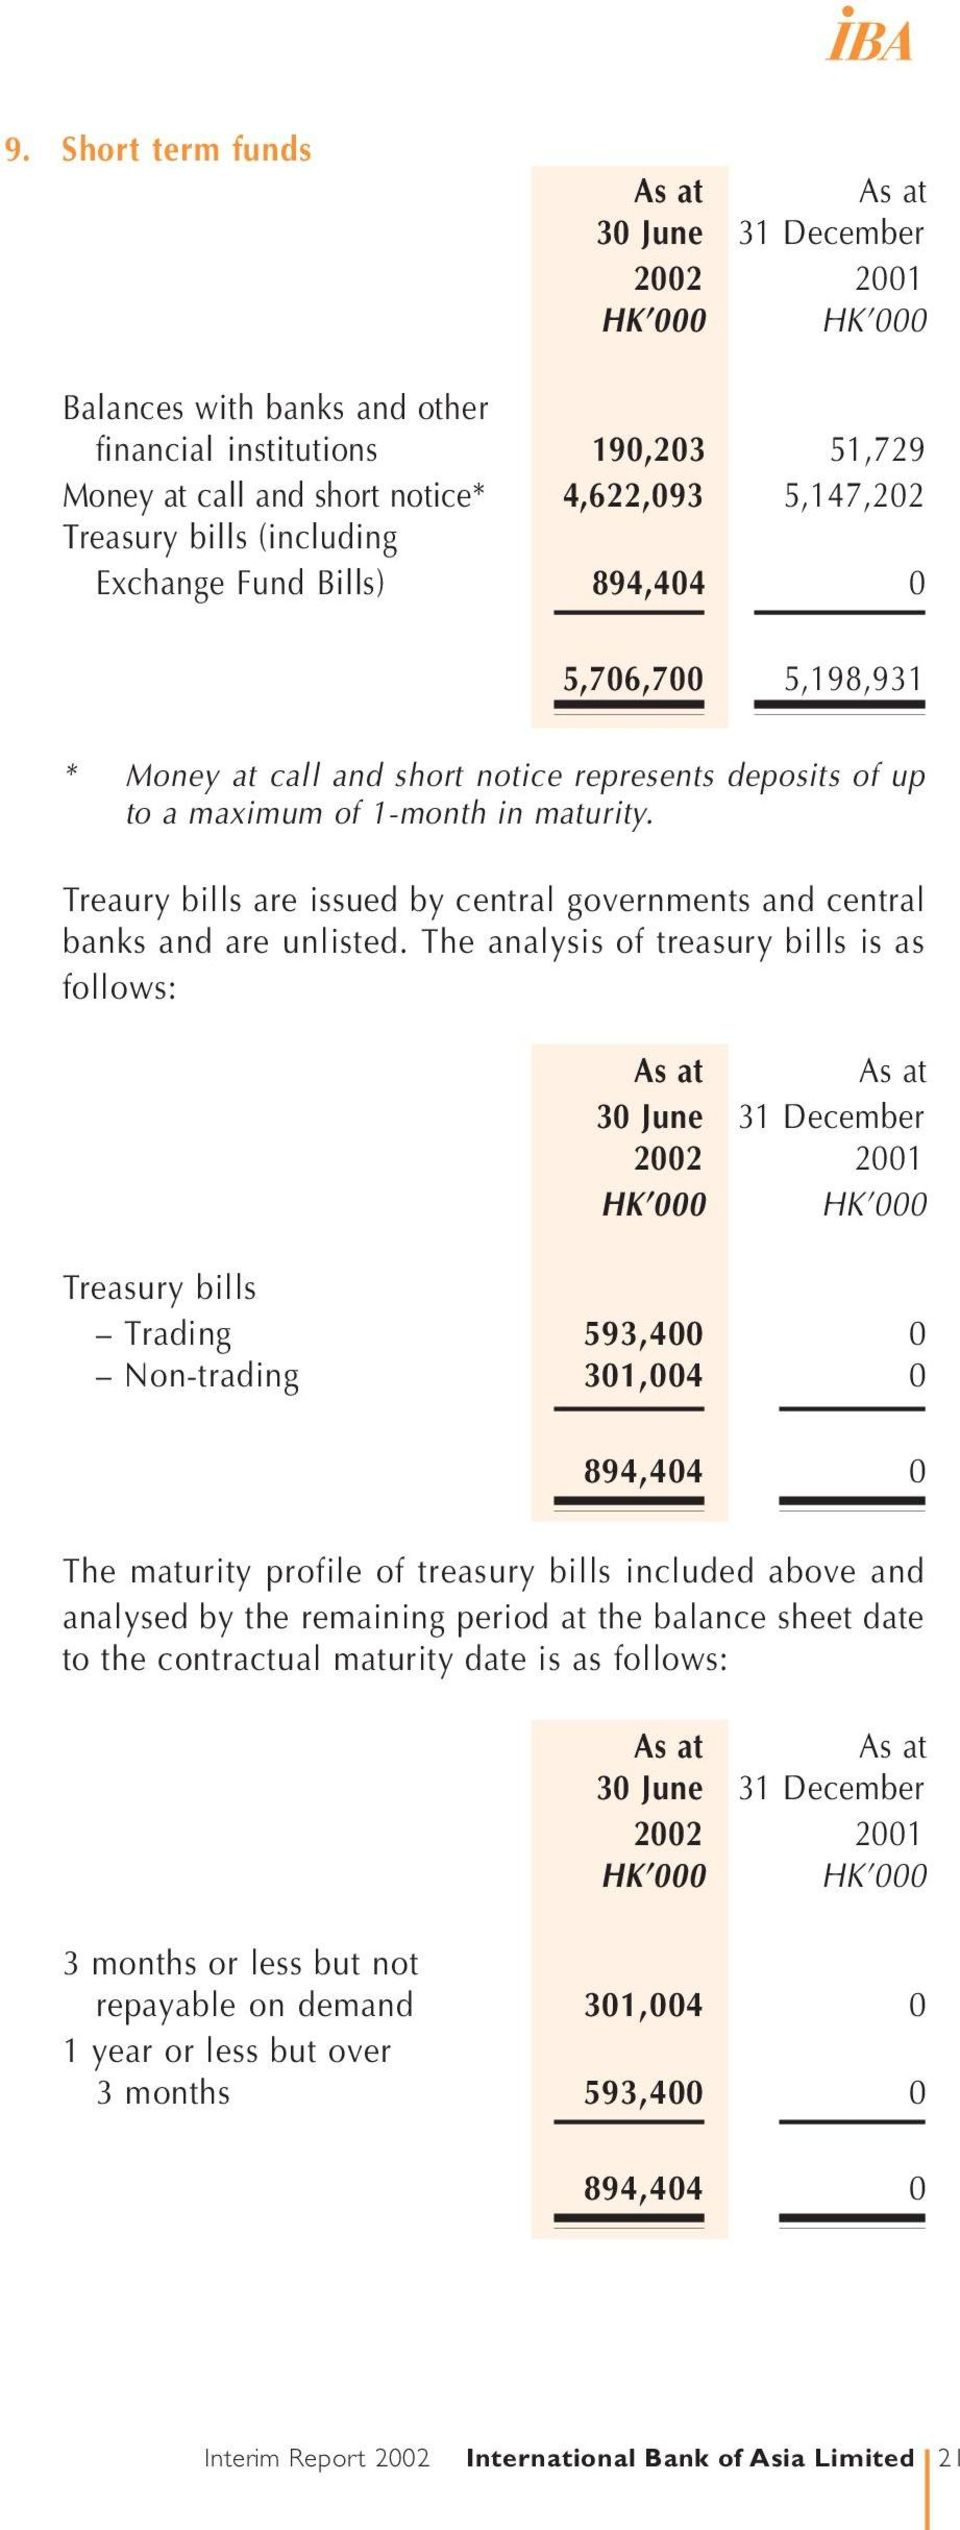 The analysis of treasury bills is as follows: Treasury bills Trading 593,400 0 Non-trading 301,004 0 894,404 0 The maturity profile of treasury bills included above and analysed by the remaining